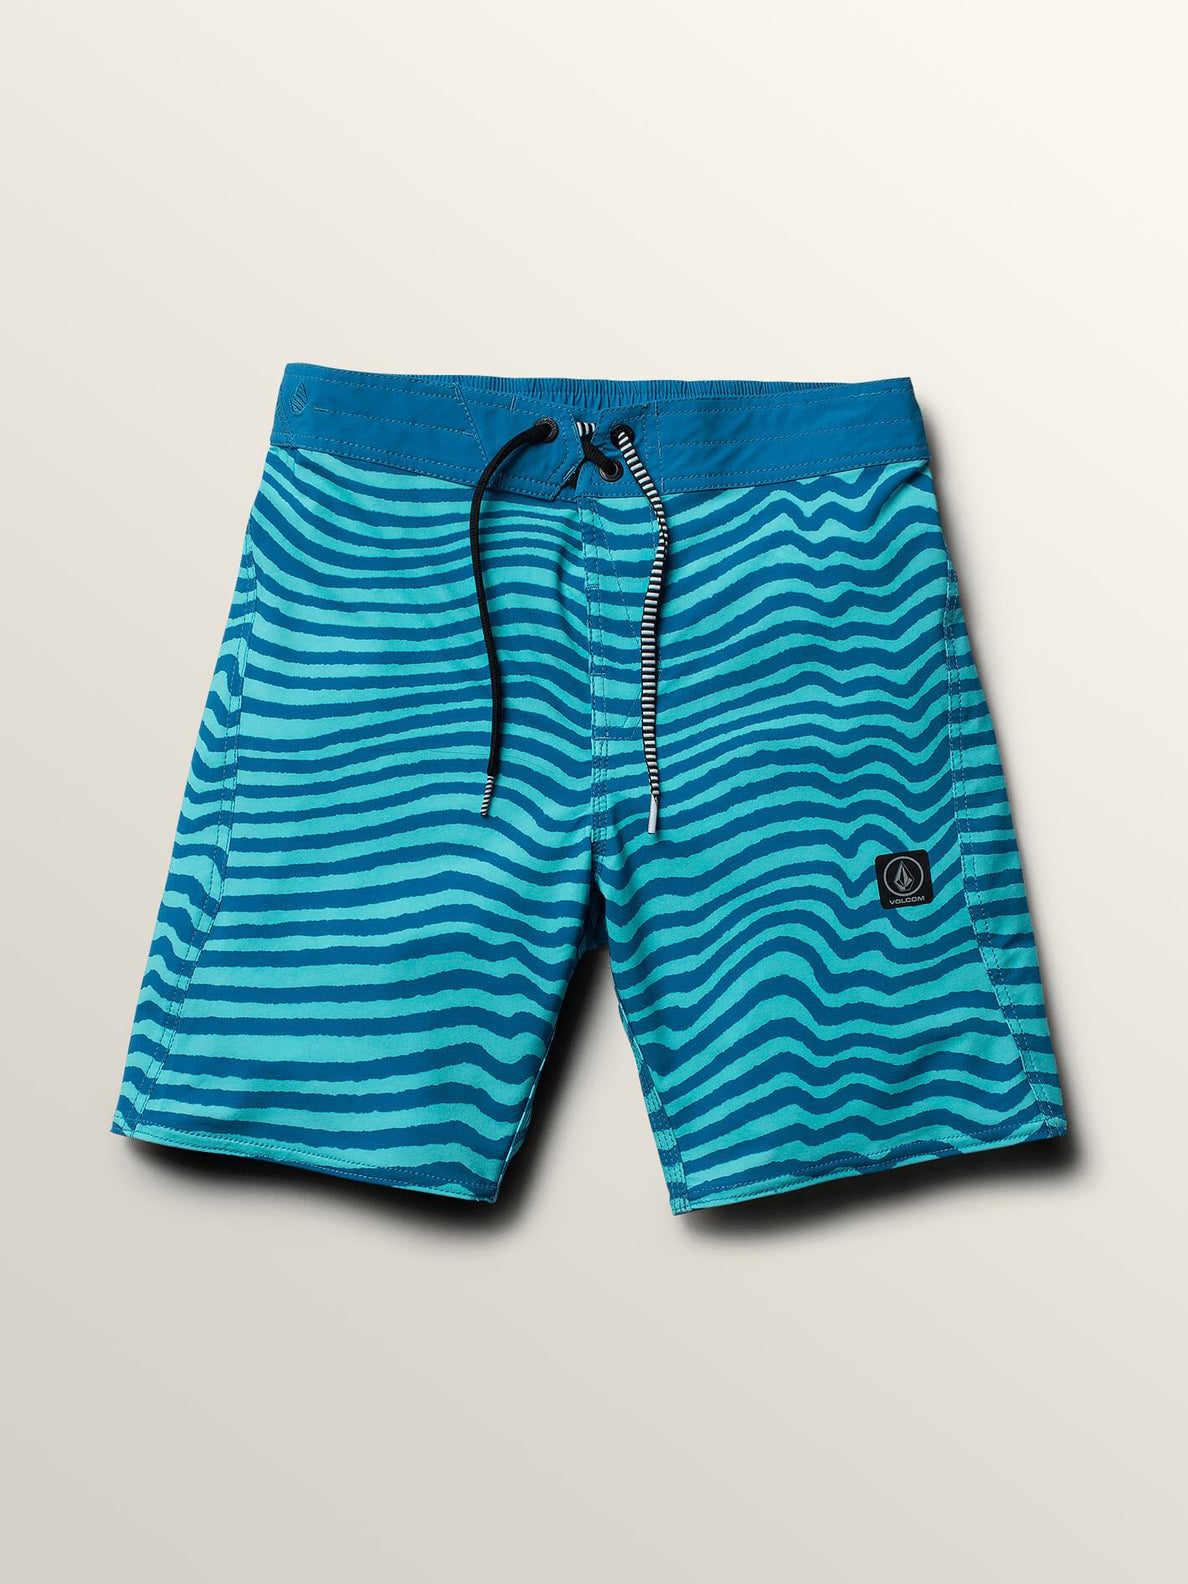 Big Boys Mag Vibes Elastic Boardshorts In Bright Turquoise, Front View